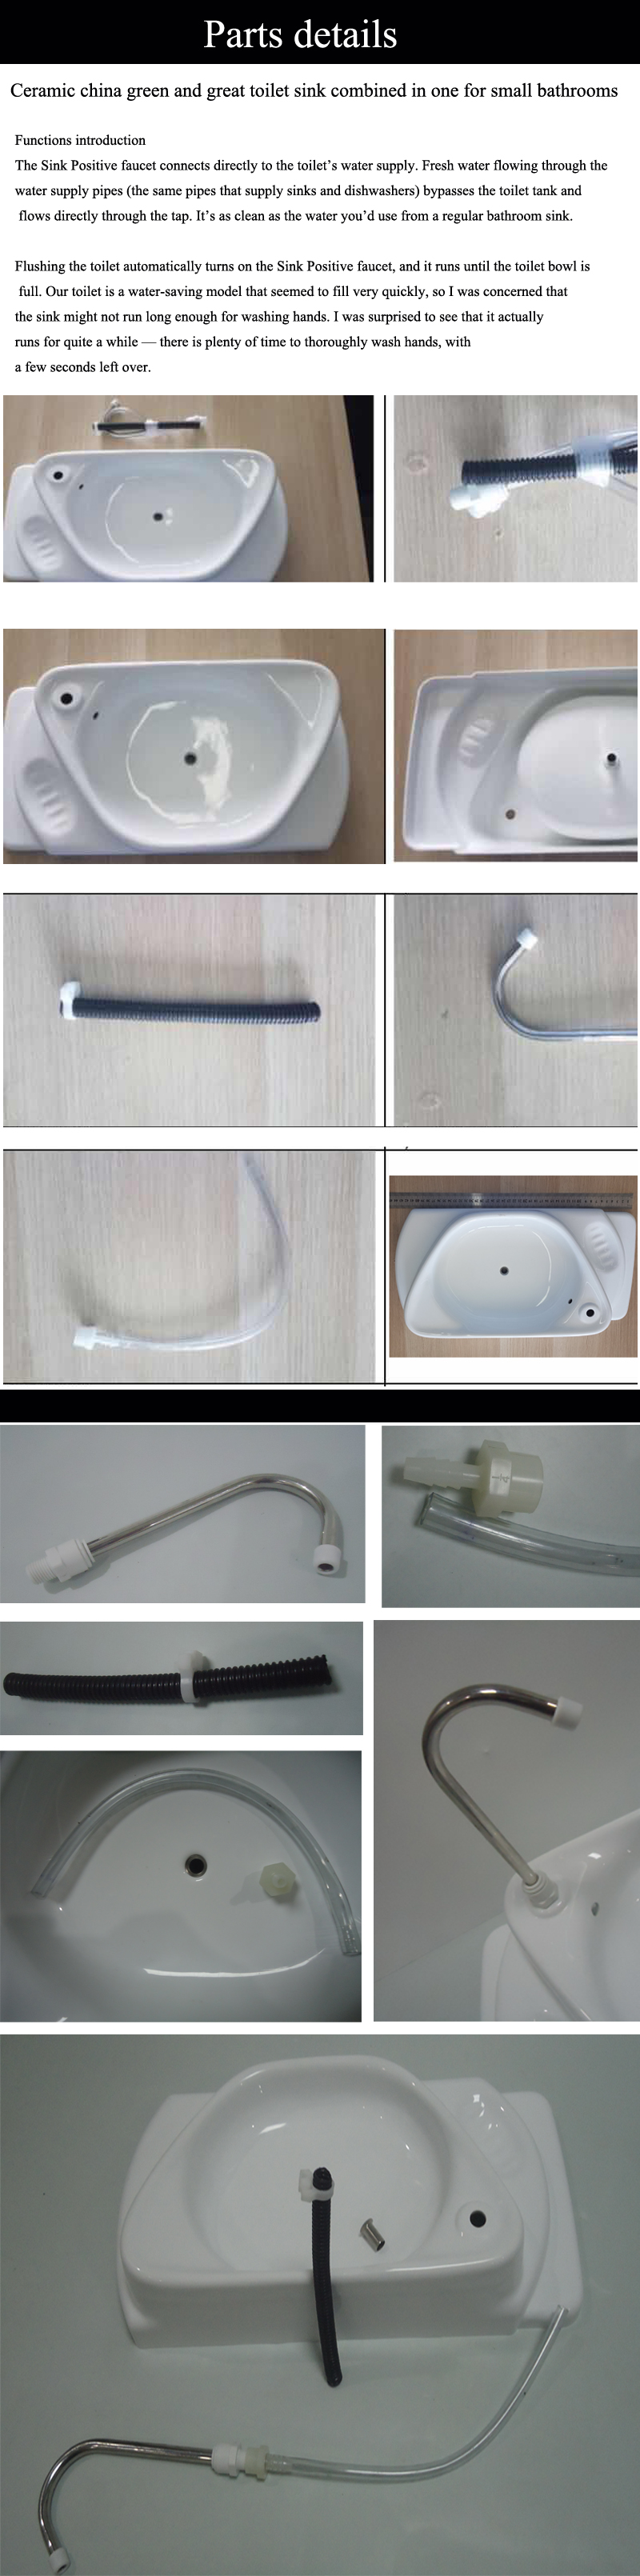 Turkish Toilet Japanese Water Saving House Toilet Sink China Plastic Free Hand Tank For Basin Vacuum Bath Cistern Drain Fittings Buy Turkish Toilet